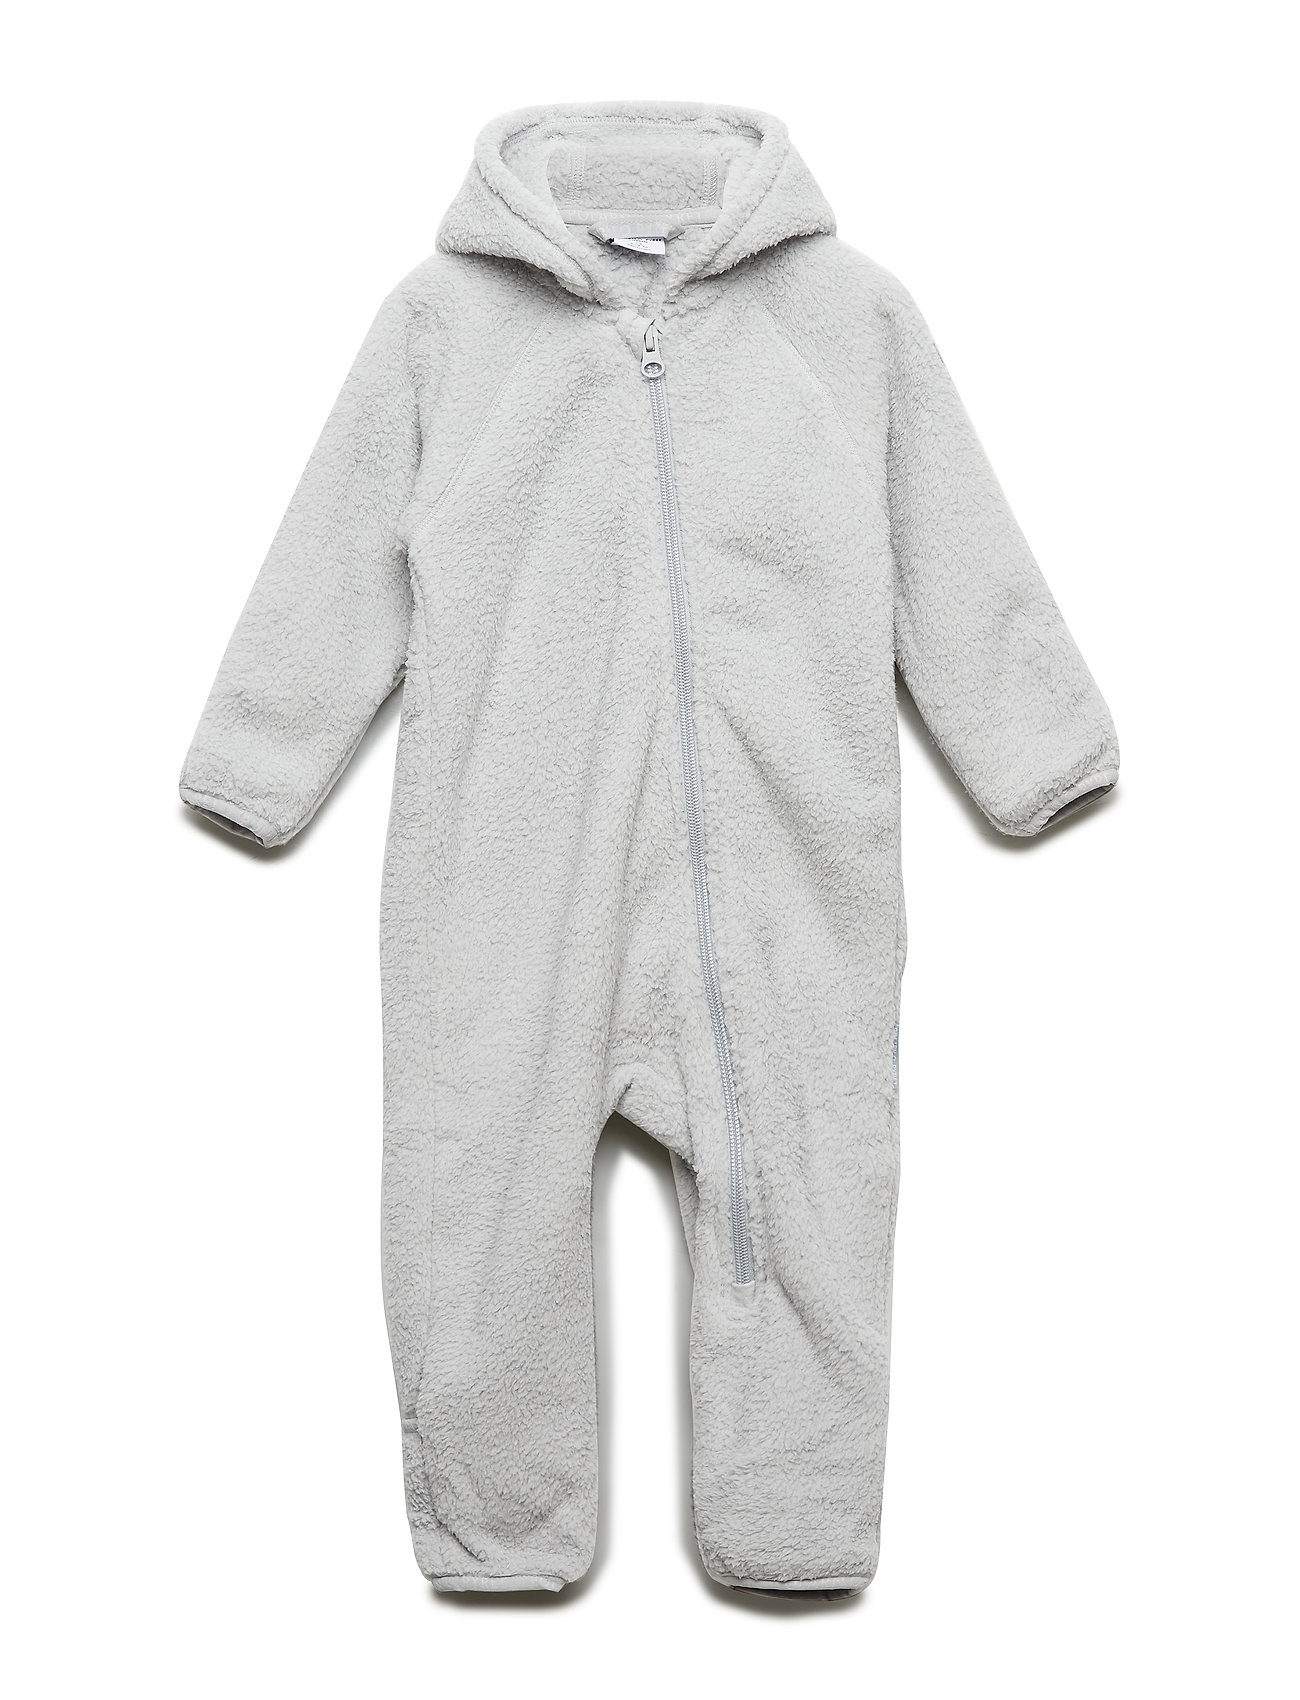 Polarn O. Pyret Overall Pile Solid Baby - GLACIER GRAY